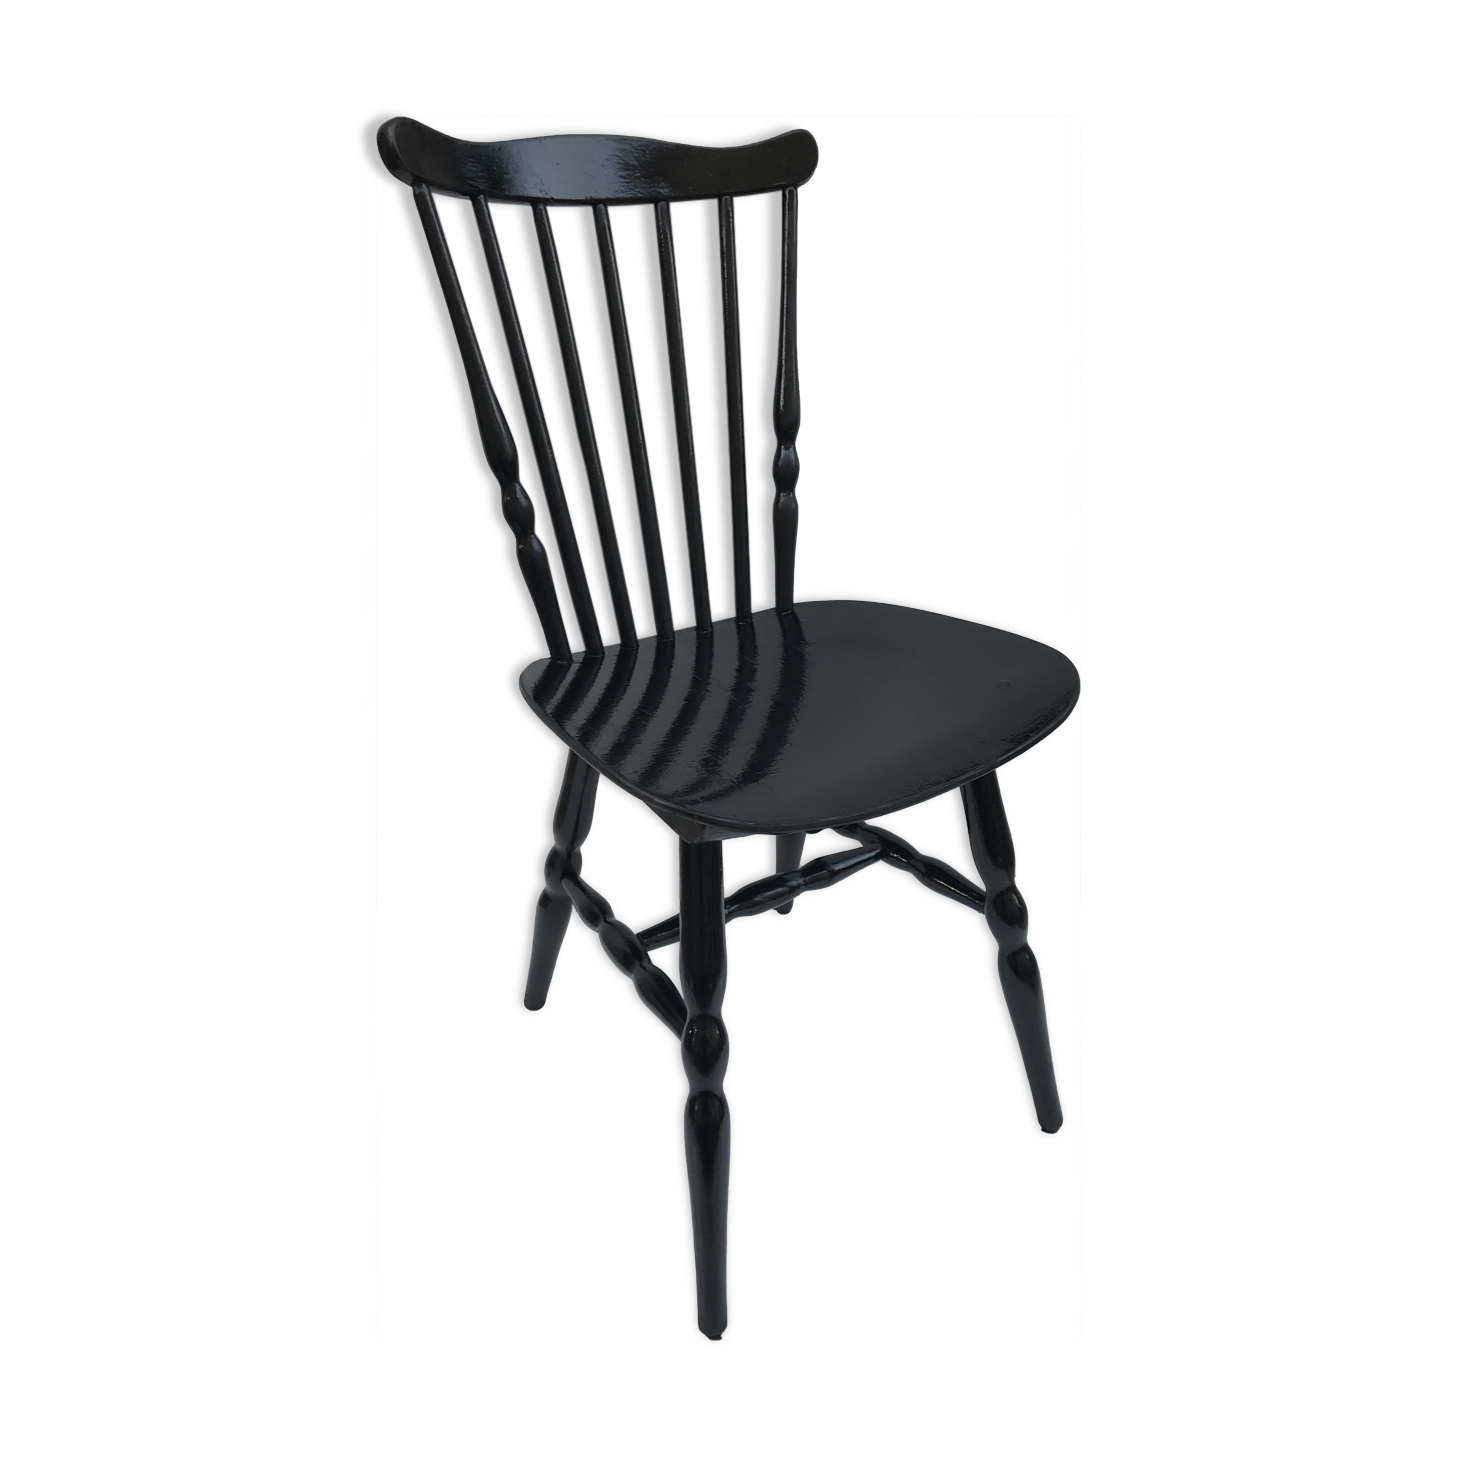 chaises bistrot noires great ikea chaises noires plastique taille differente chaises dpareilles. Black Bedroom Furniture Sets. Home Design Ideas